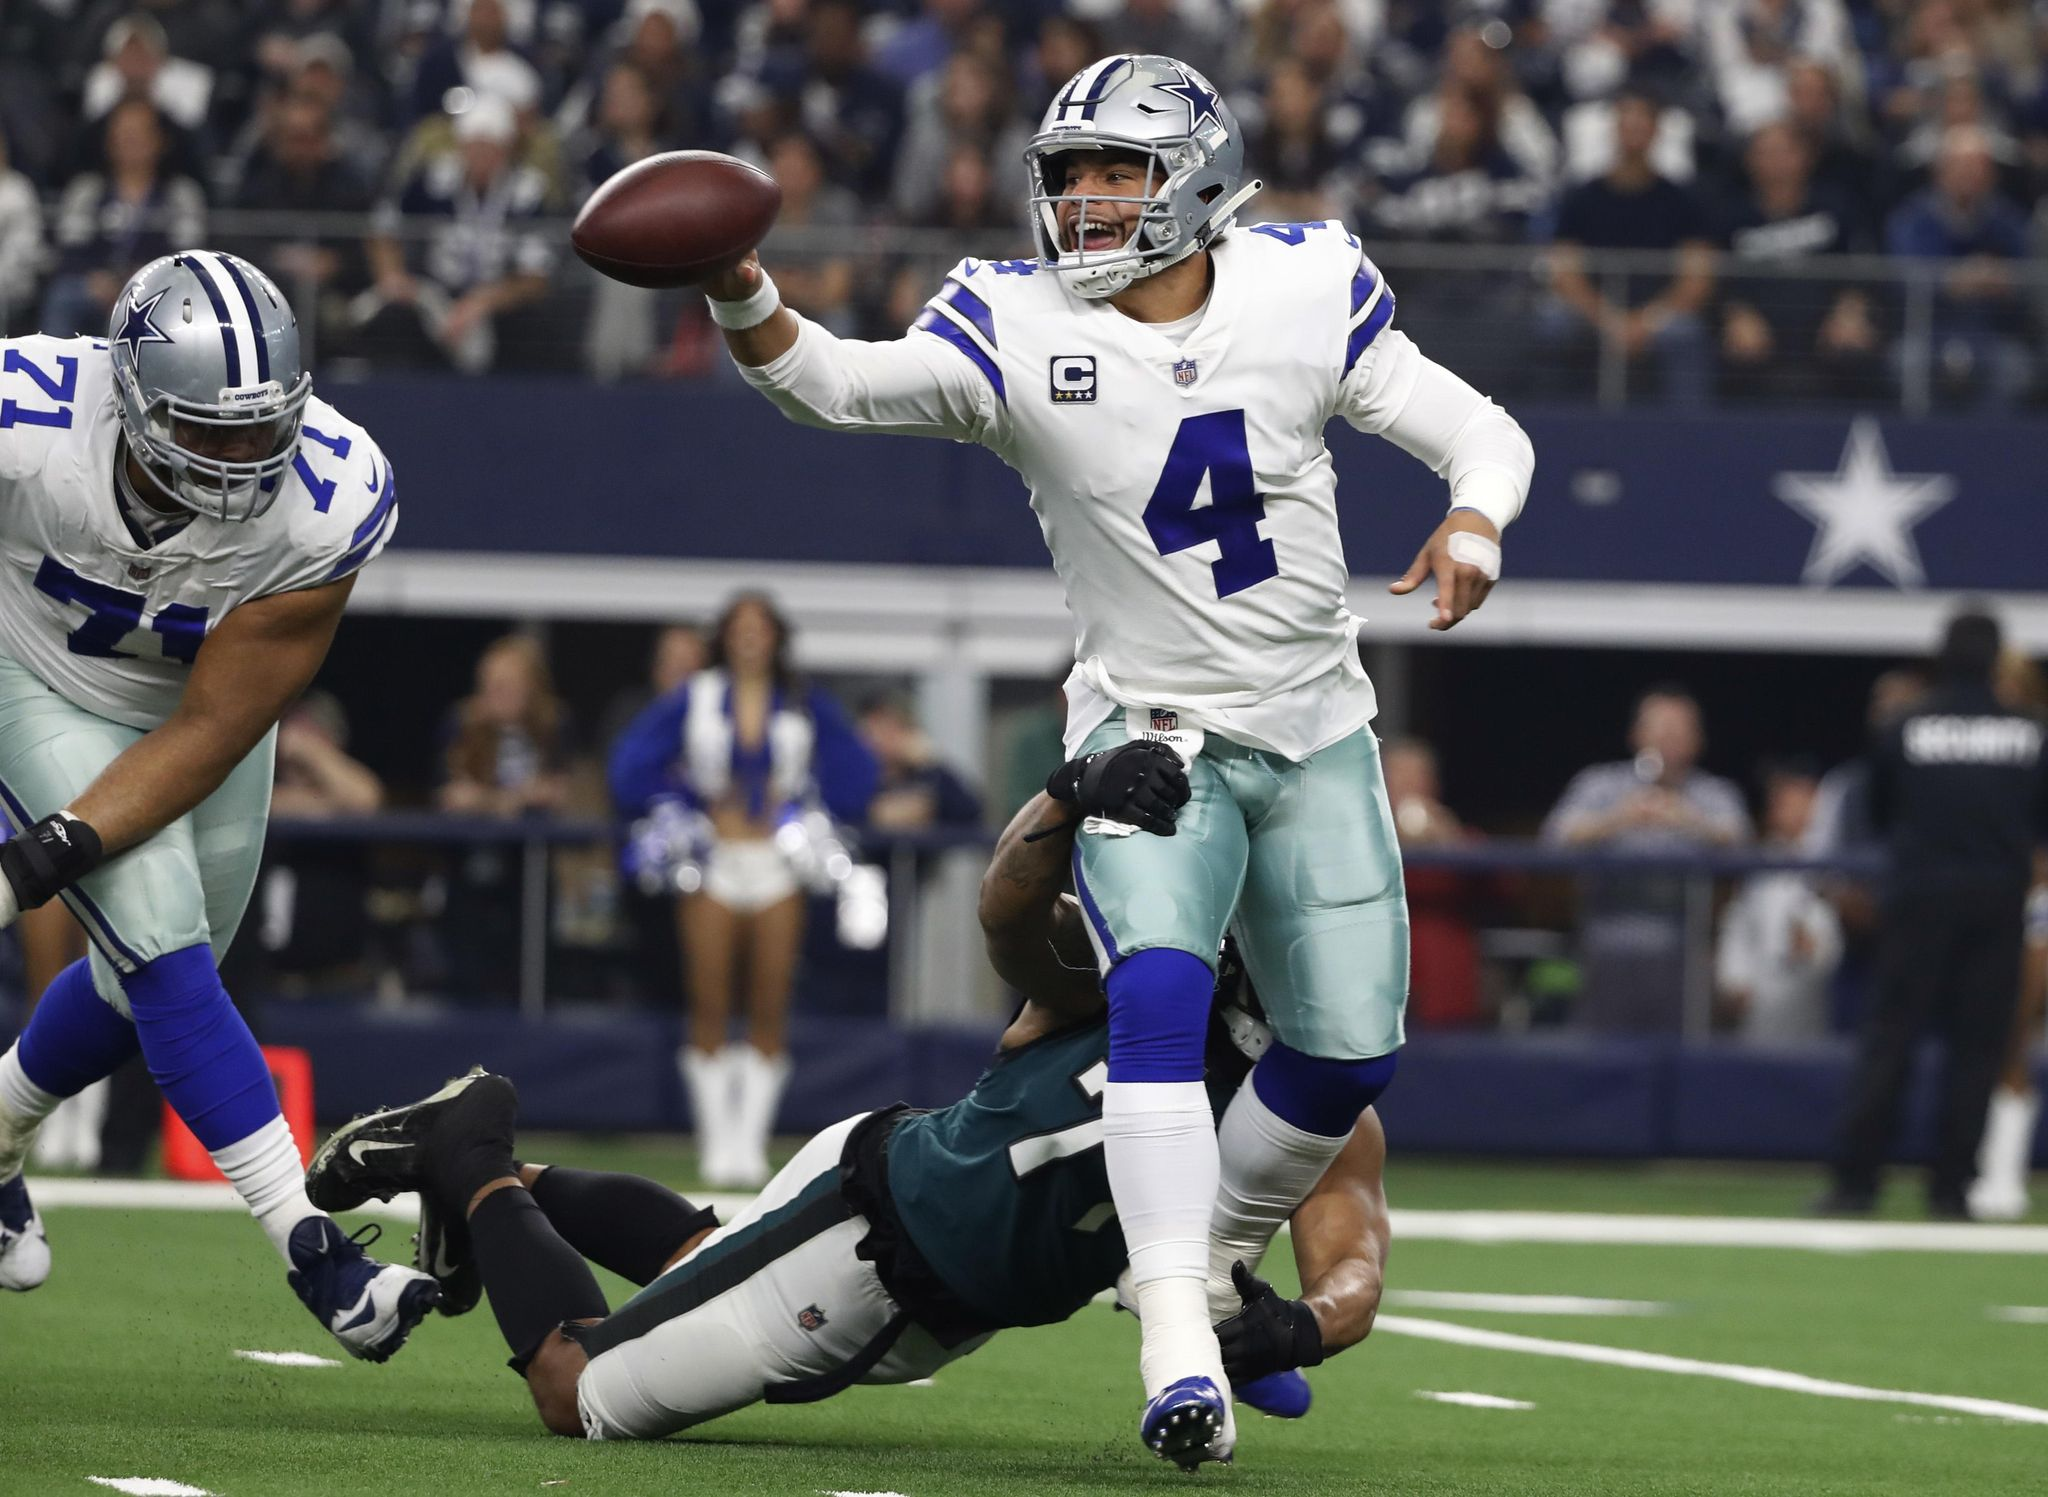 Eagles_cowboys_football_83139_s2048x1497